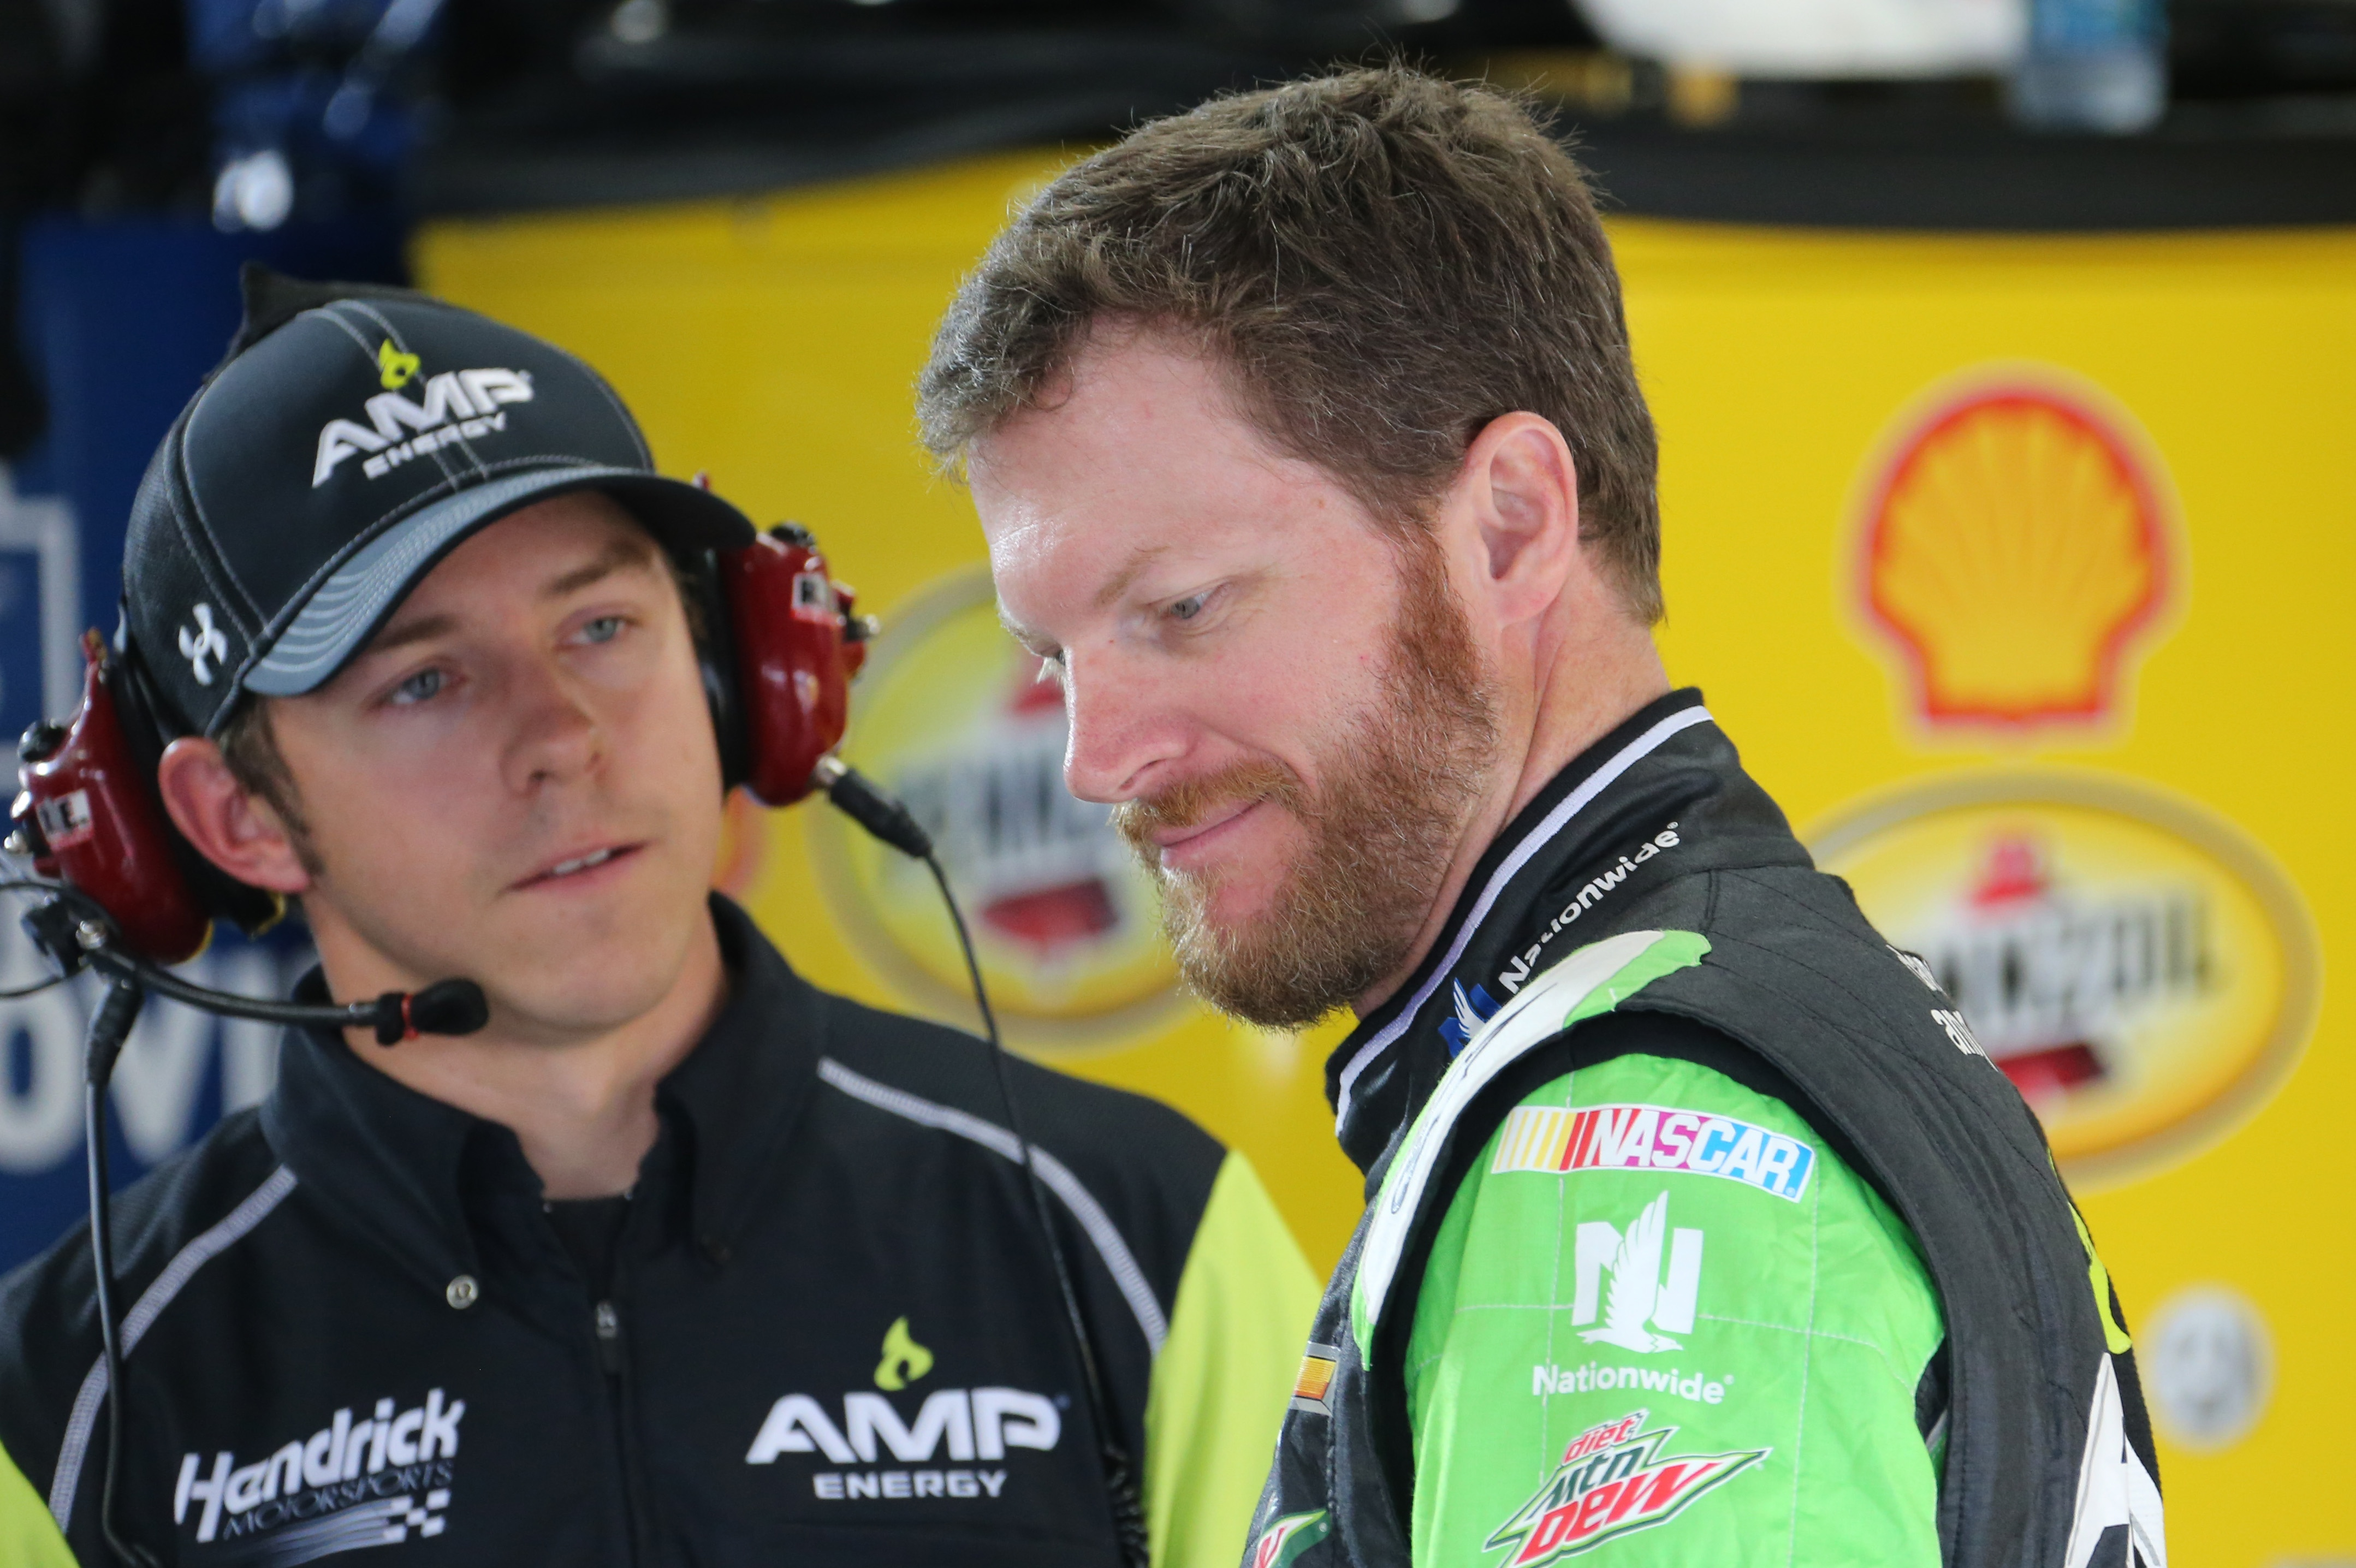 Dale Earnhardt Jr., right, talks with crew chief Greg Ives after practicing for Sunday's NASCAR Sprint Cup series auto race at Michigan International Speedway, Friday, June 12, 2015, in Brooklyn, Mich. (AP Photo/Bob Brodbeck)